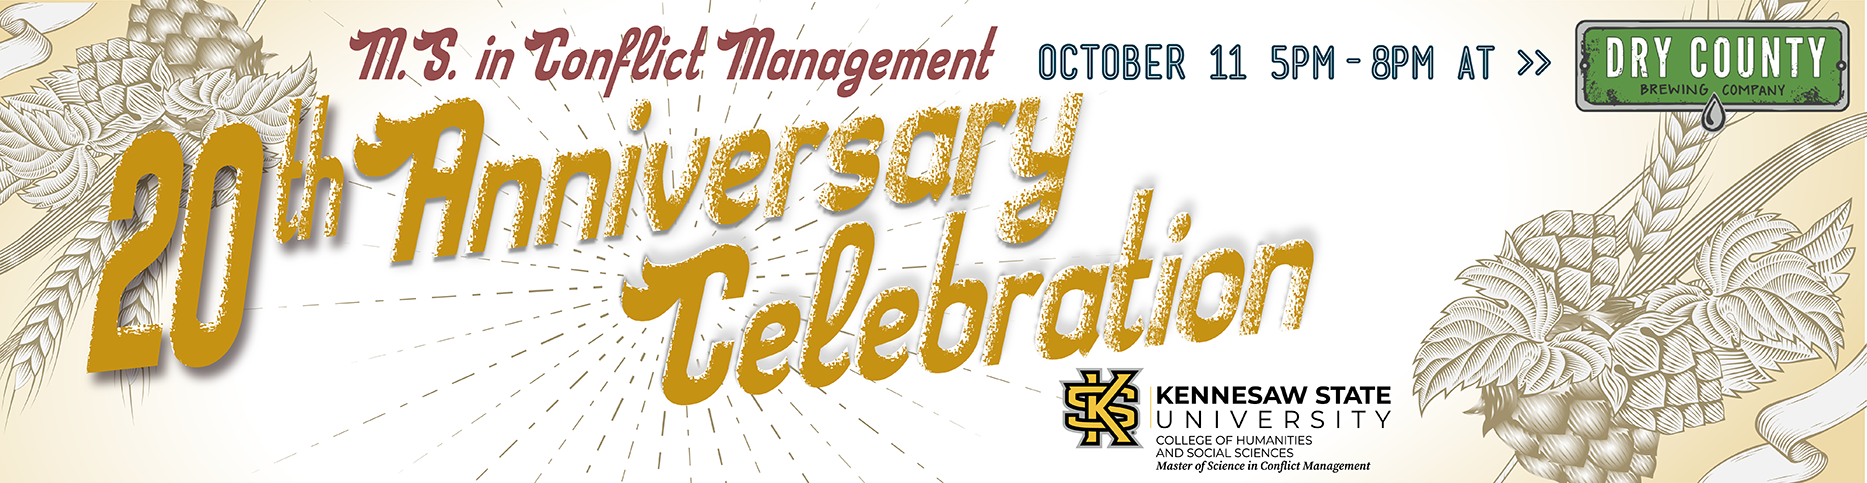 TICKETS NOW AVAILABLE: 20th Anniversary Celebration